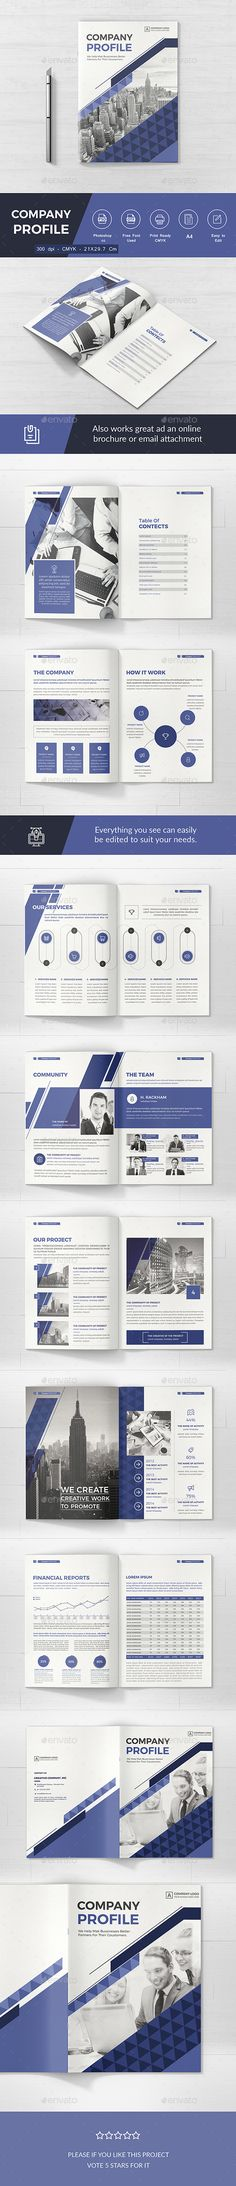 Square Company Profile Brochure Square company, Company profile - it company profile template